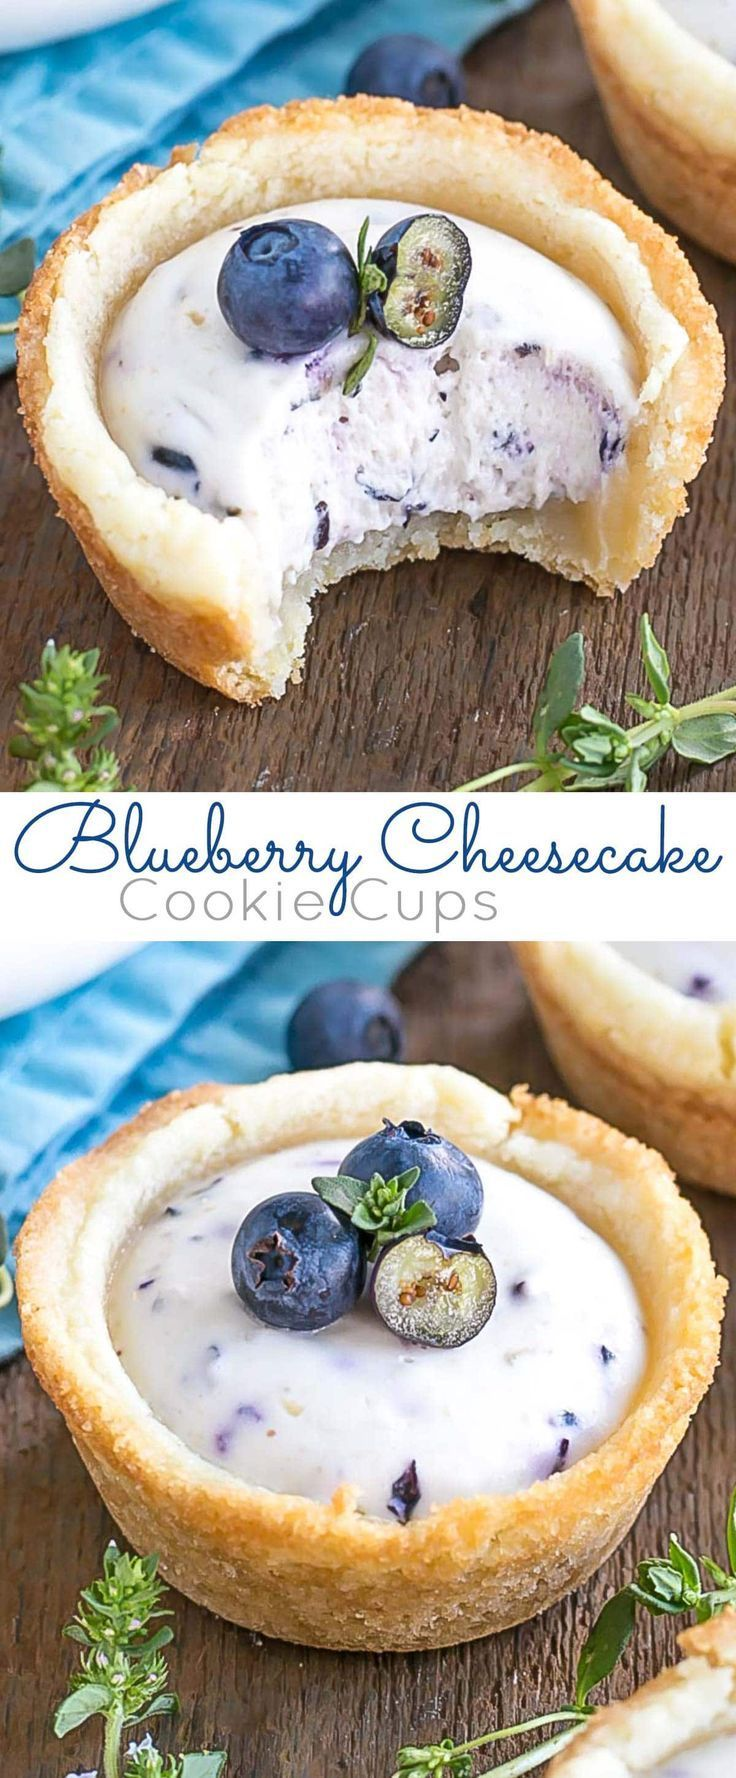 These Blueberry Cheesecake Cookie Cups make the perfect use of those fresh summer berries!   livforcake.com